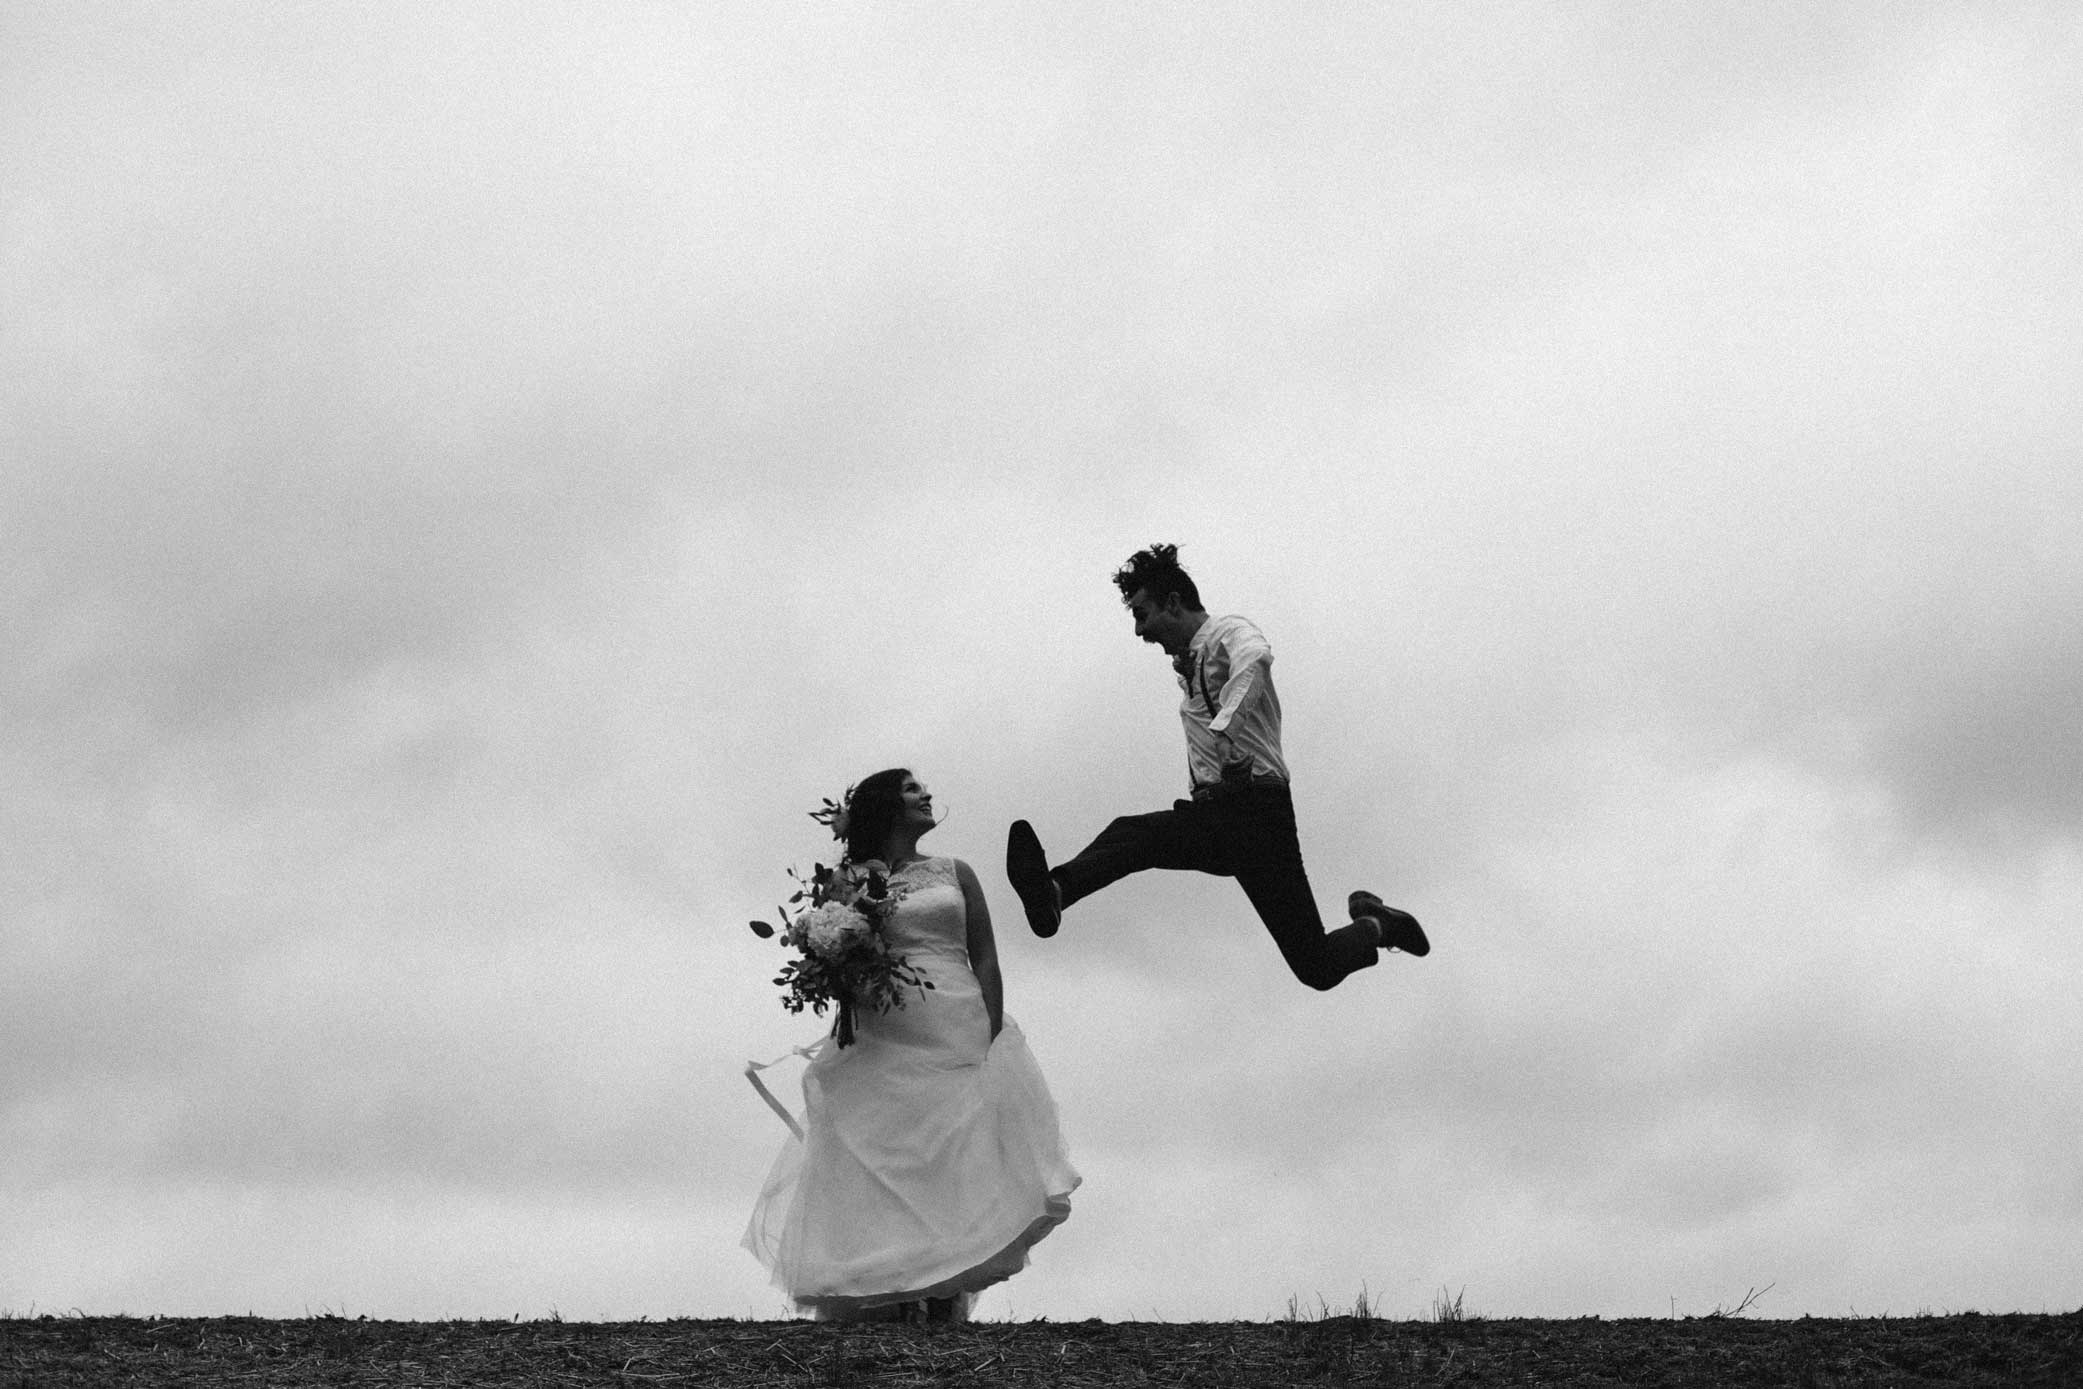 She keeps him grounded... - Cory & Olivia's wedding was our first we photographed together. If anyone knows Cory, they know this photo sums up his energy accurately. Olivia, full of wisdom & grace, compliments his high-energy spunk perfectly. Their love spurs each other on to love others selflessly.